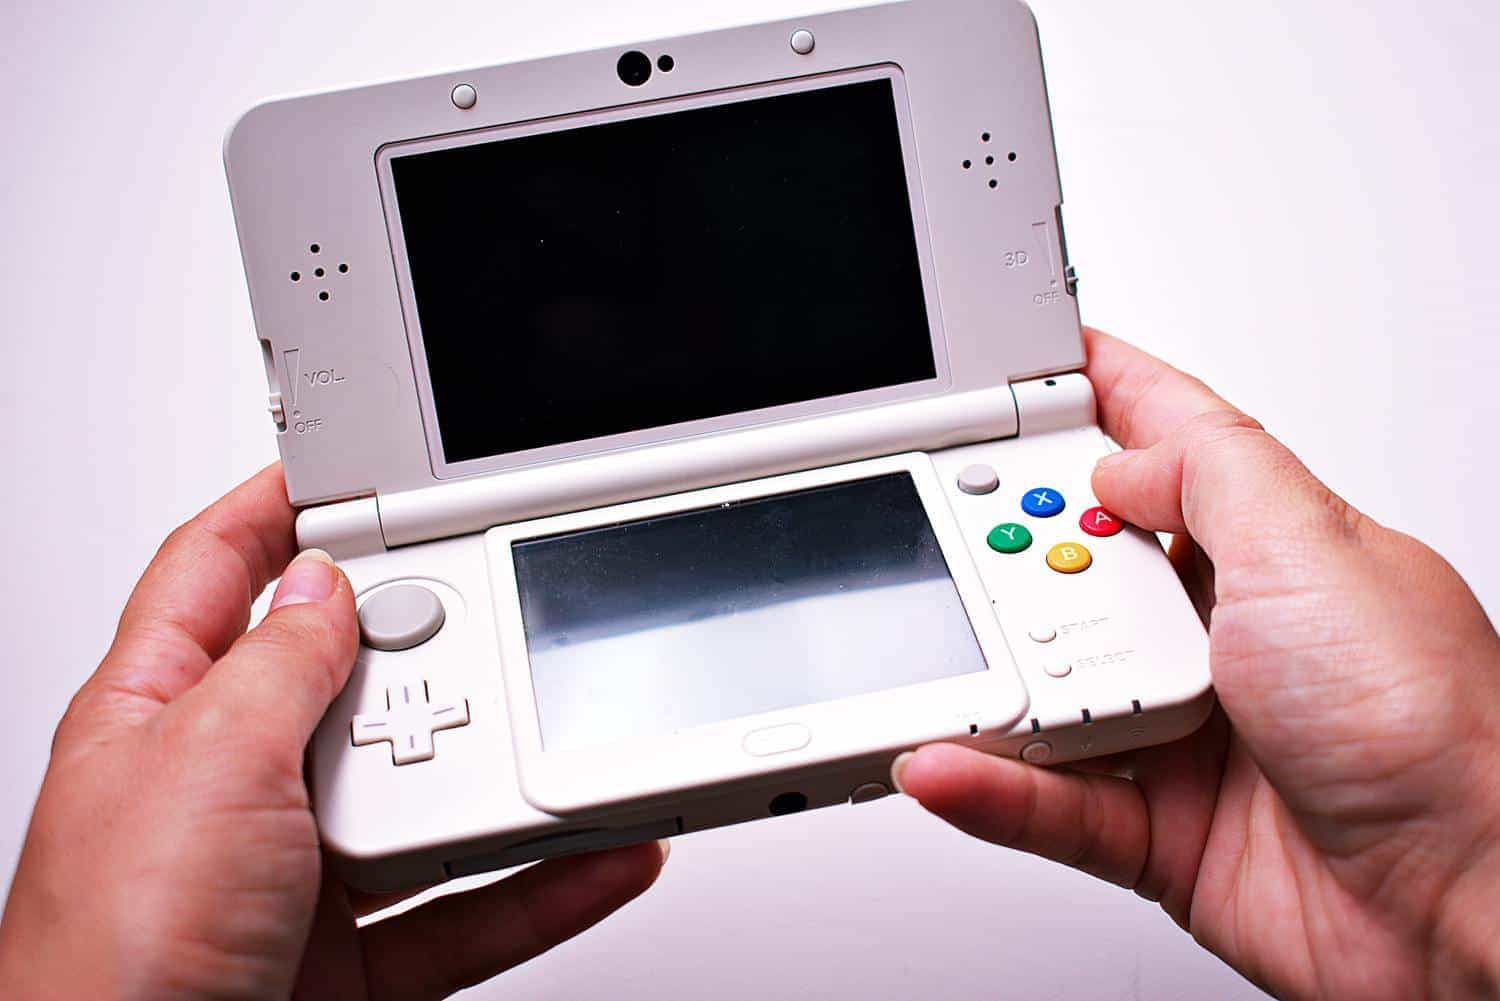 Top 5 Portable Gaming Devices That Didn't Survive the Mobile Era